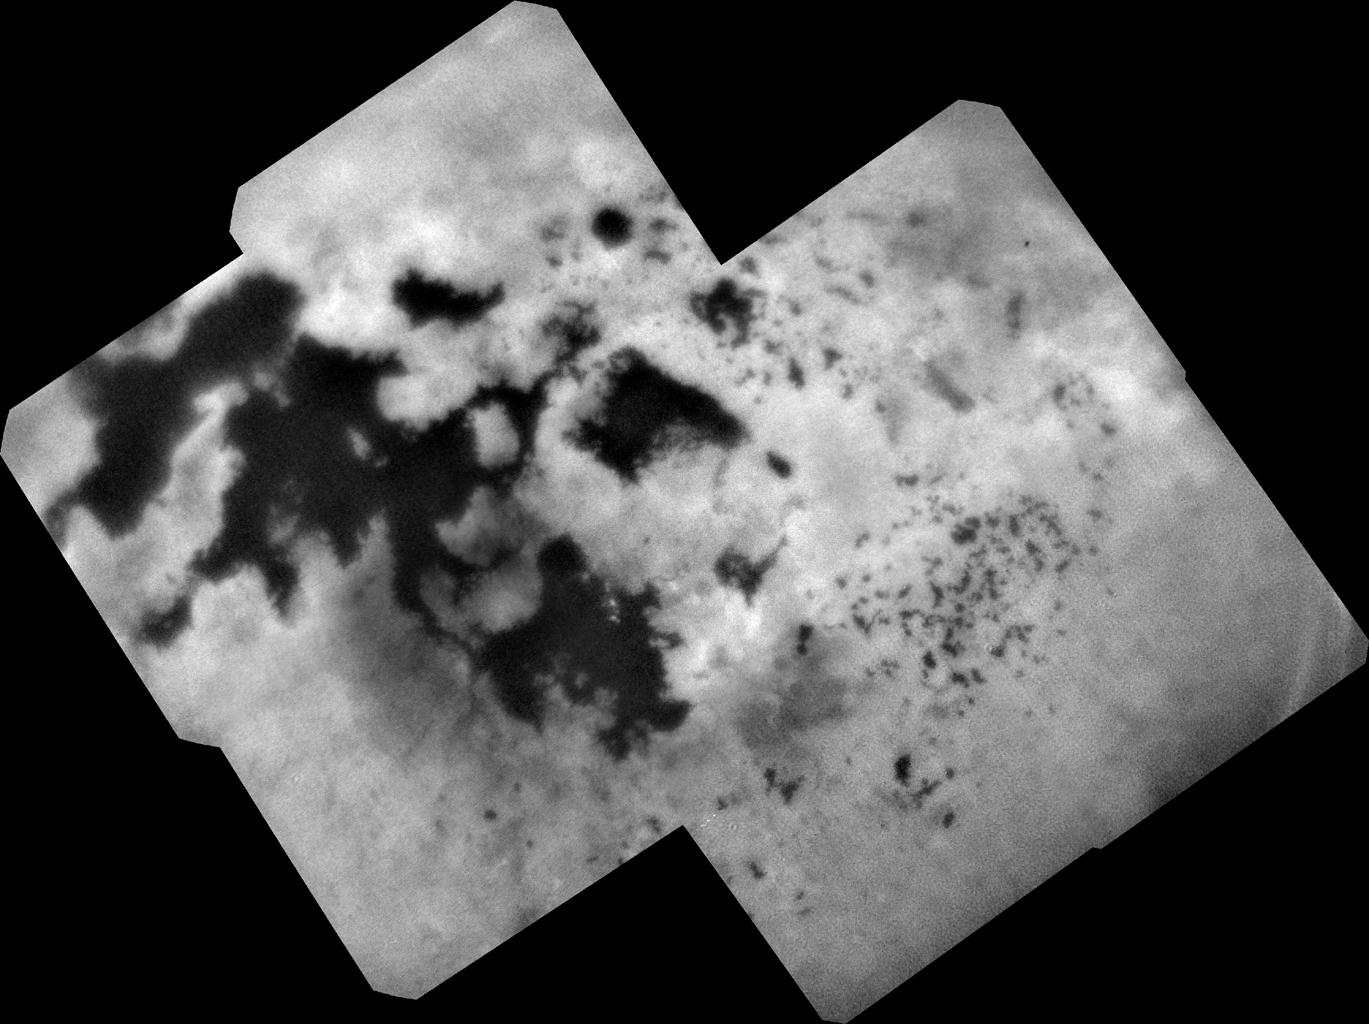 Four days before Cassini's fiery end, onboard cameras snapped this mosaic of photos of the north polar landscape of Titan, which is filled with liquid methane and ethane lakes and seas. Photo Credit: NASA / JPL-Caltech / SSI